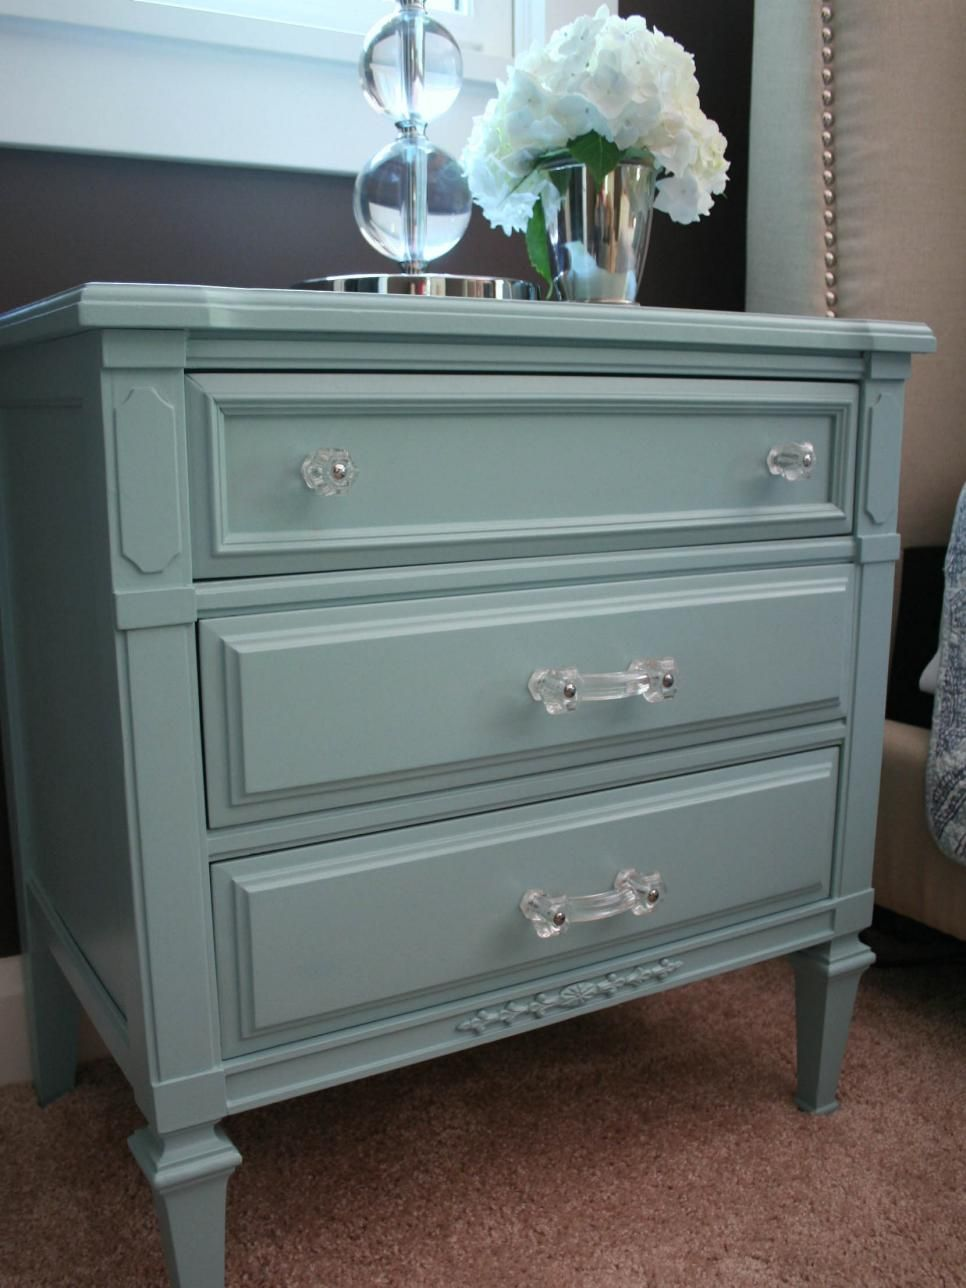 Ideas For Updating An Old Bedside Tables Furniture Makeover Redo Furniture Small Chest Of Drawers